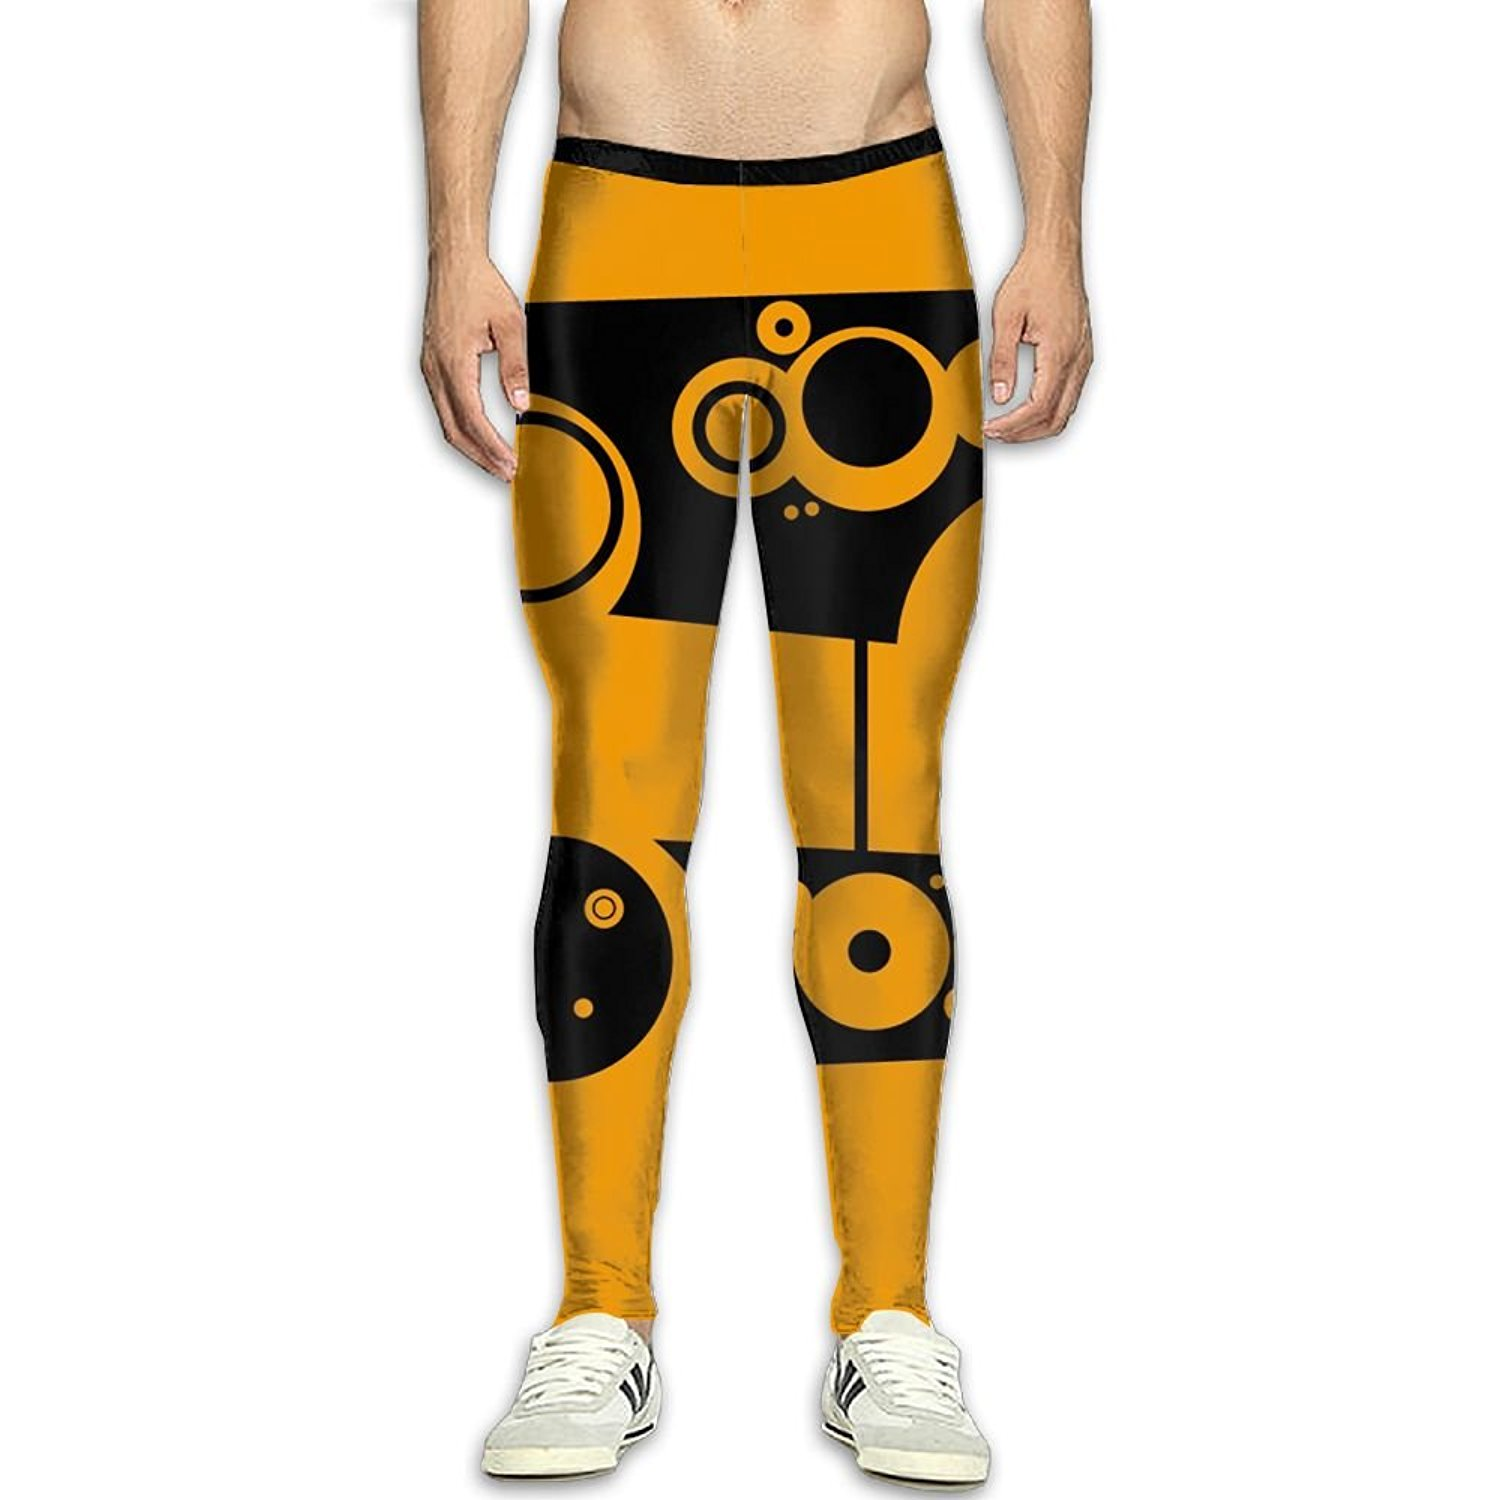 ba9dc7e3f Get Quotations · Fri Yellow And Black Cool Compression Pants Running Tights  Gym Tights For Men Female Christmas